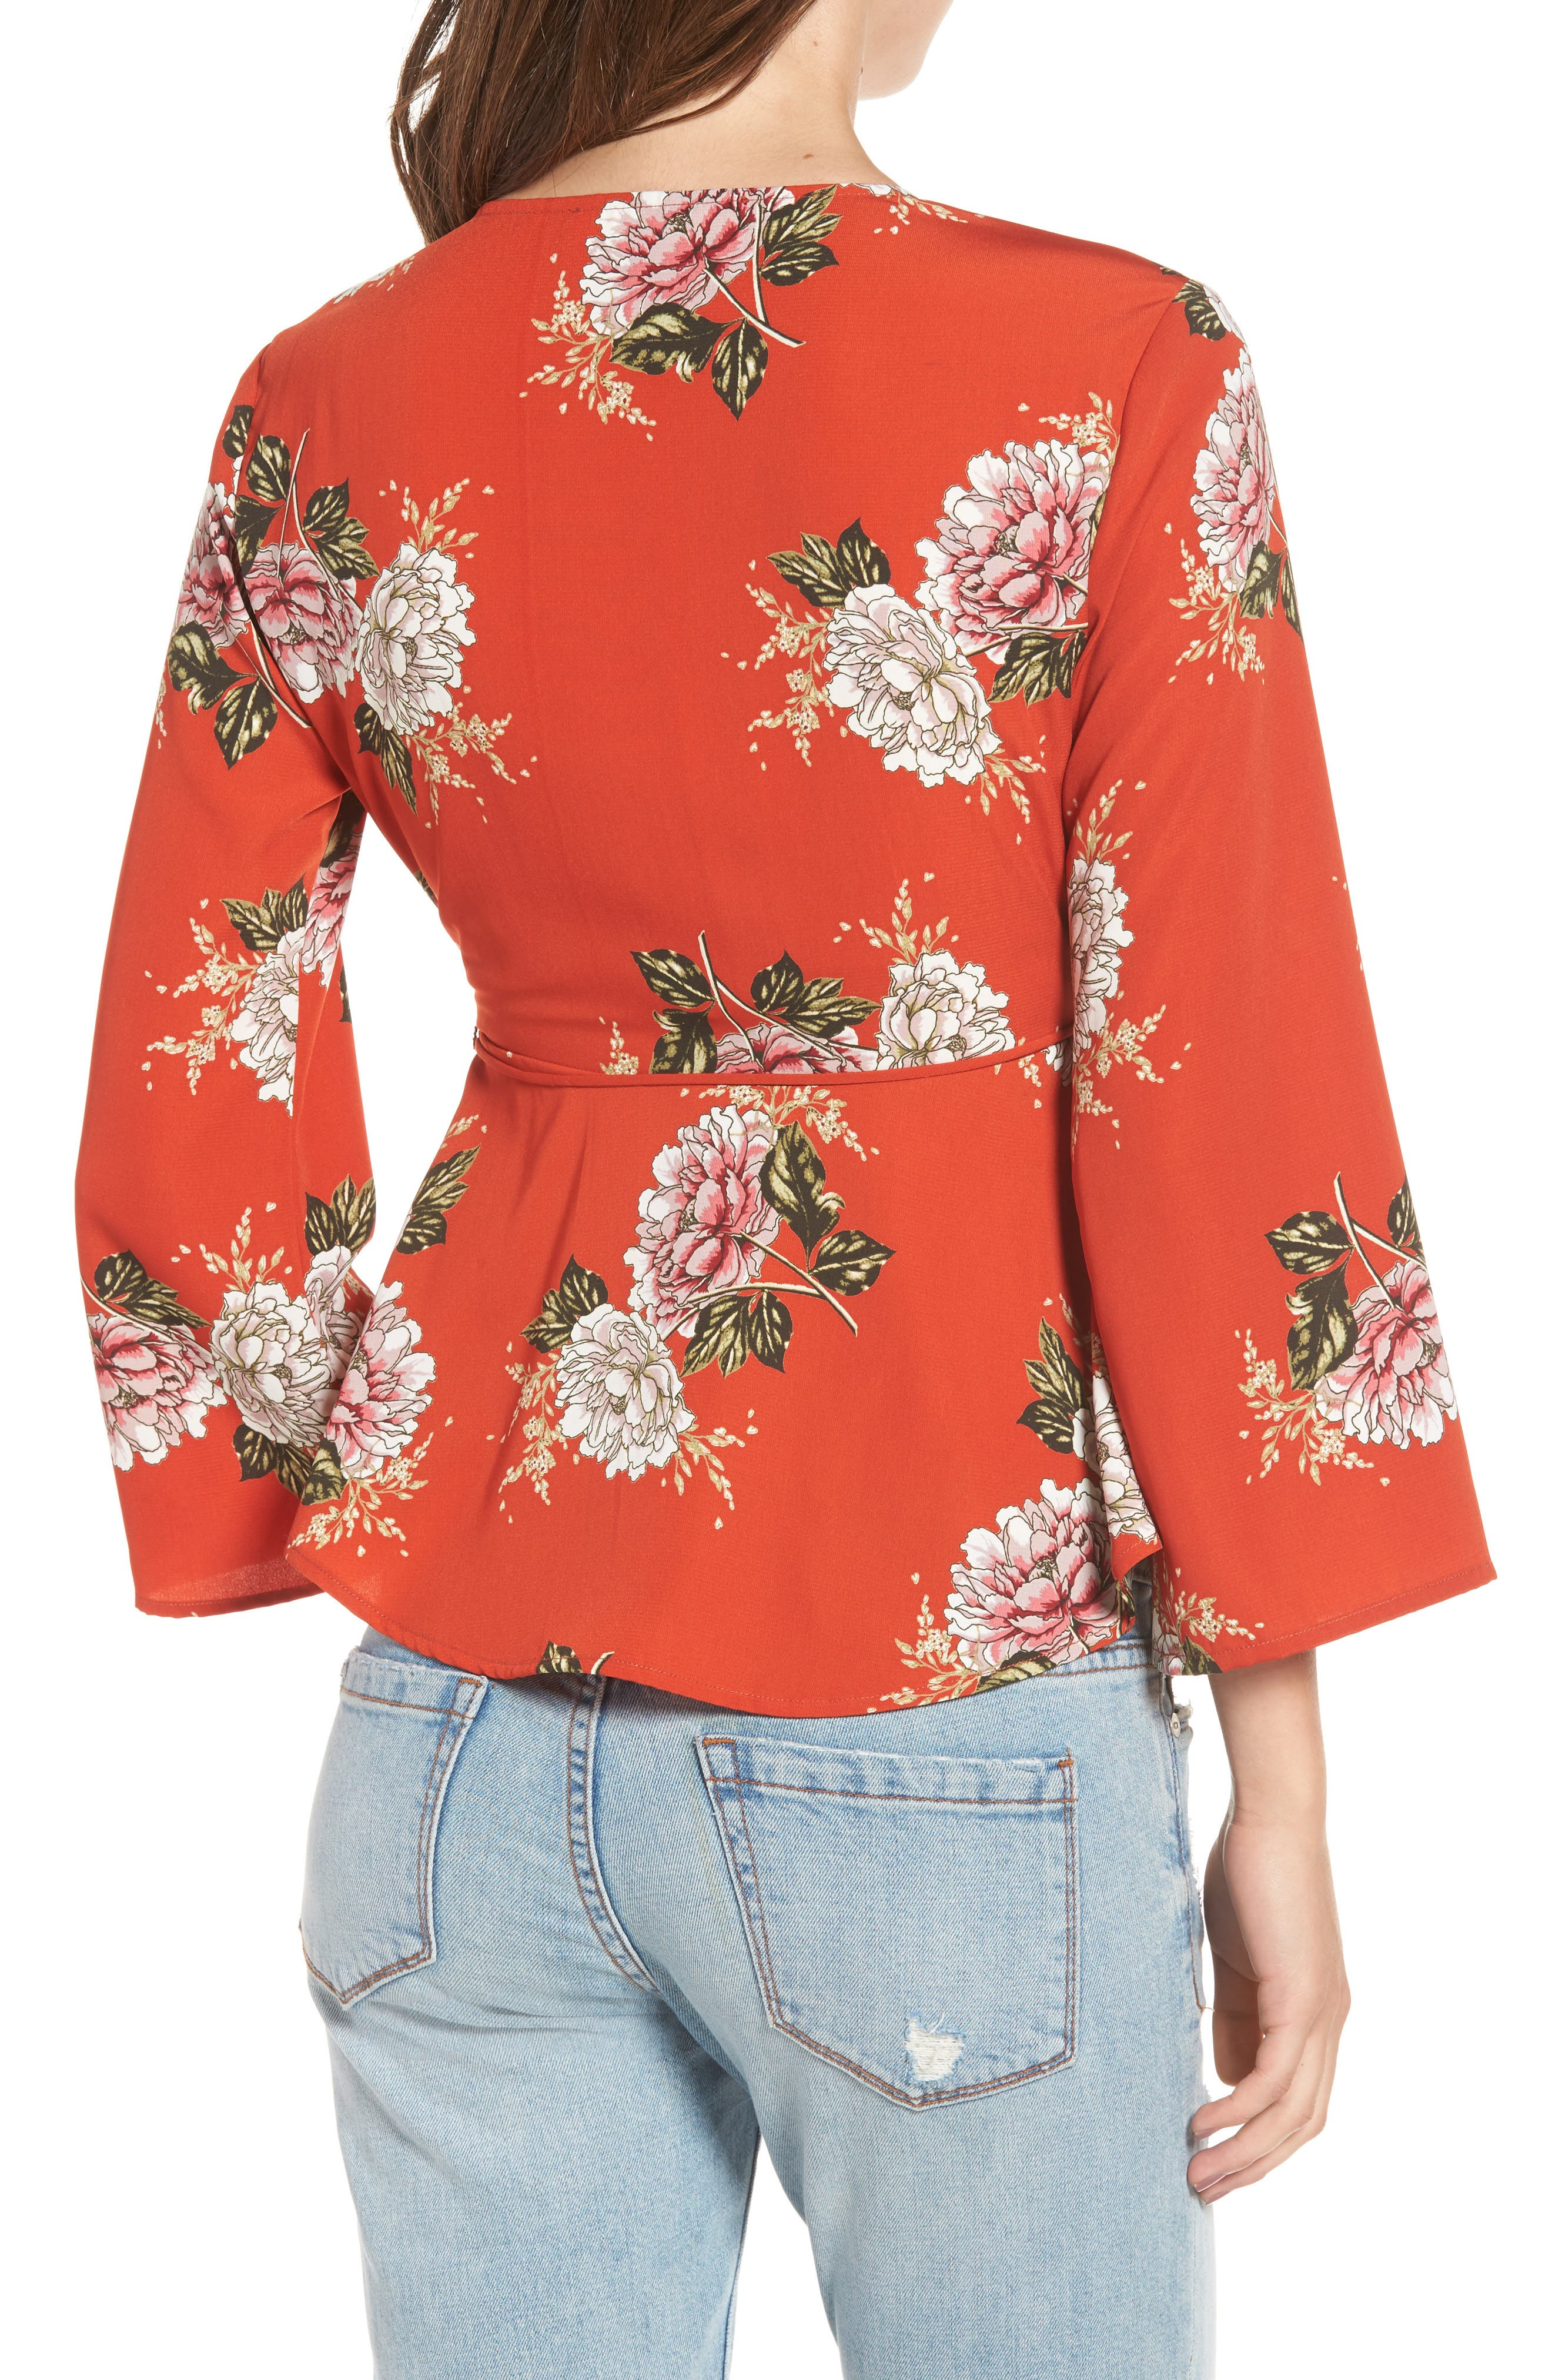 Wrap Top,                             Alternate thumbnail 2, color,                             Red Multi Floral